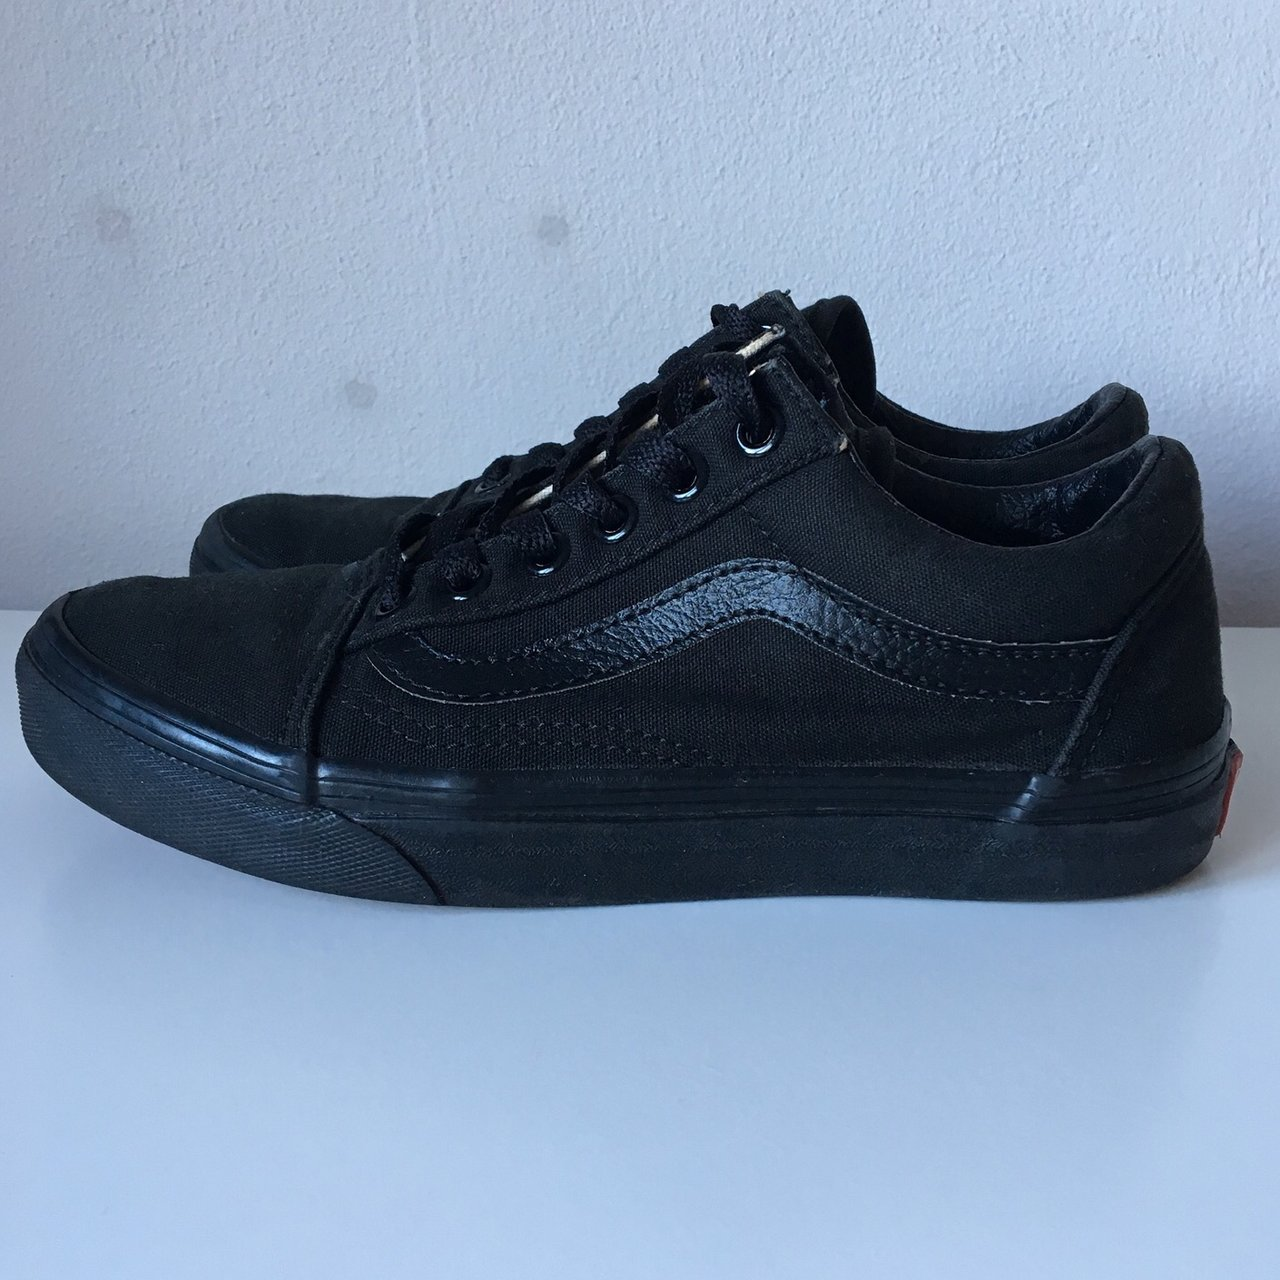 Full black old skool vans Size 3 Great condition 00b83318e